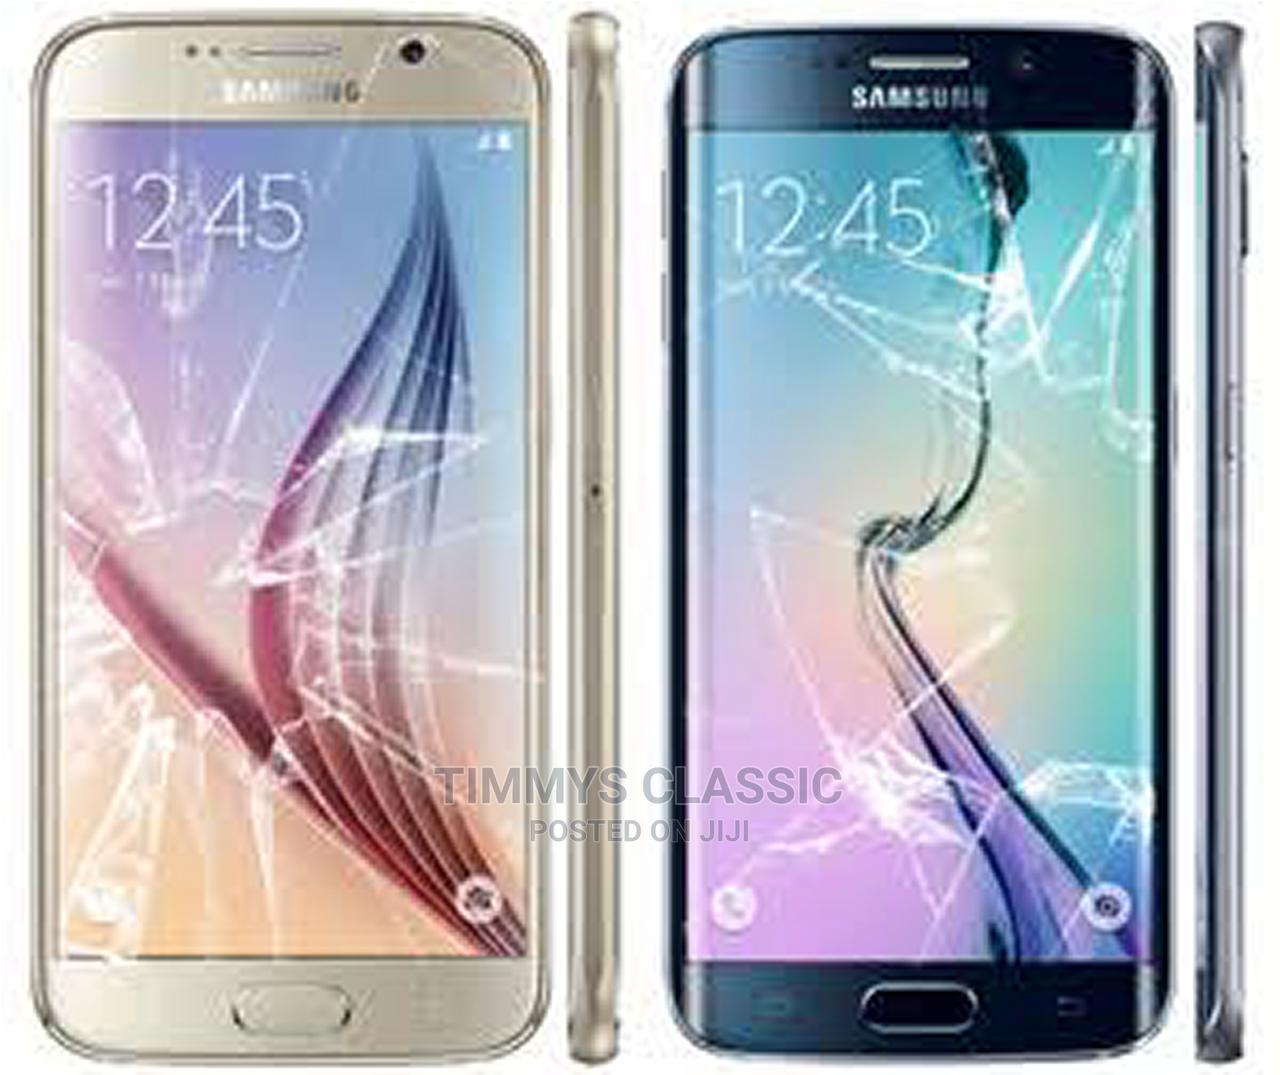 We Fix Replace All Samsung Phones Screen